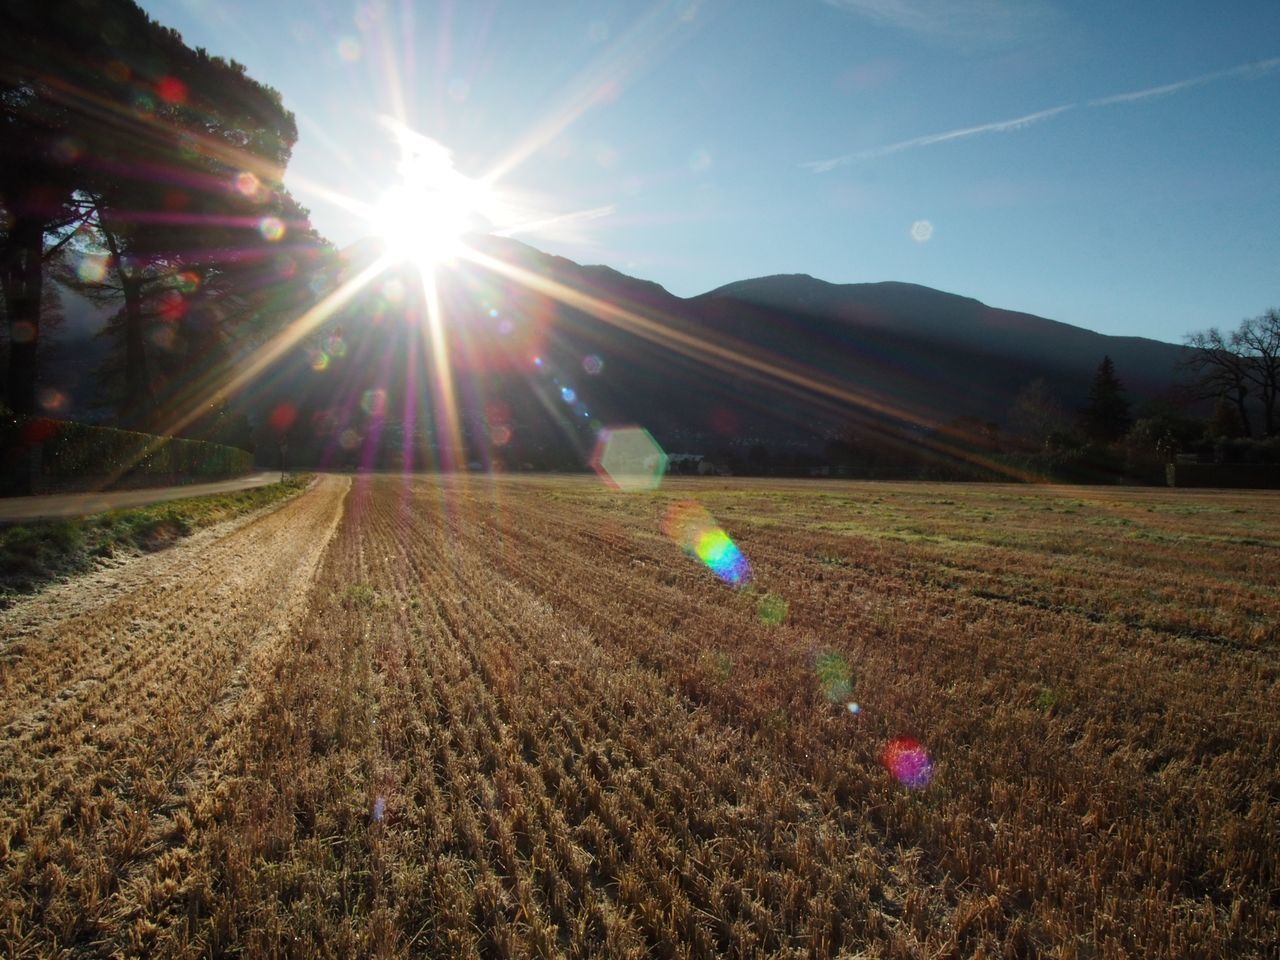 Beauty In Nature Day Field Field Landscape Lens Flare Mountain Mountains Nature No People Outdoors Scenics Sky Sun Sunbeam Sunlight Tranquil Scene Tranquility Wheat Wheat Field